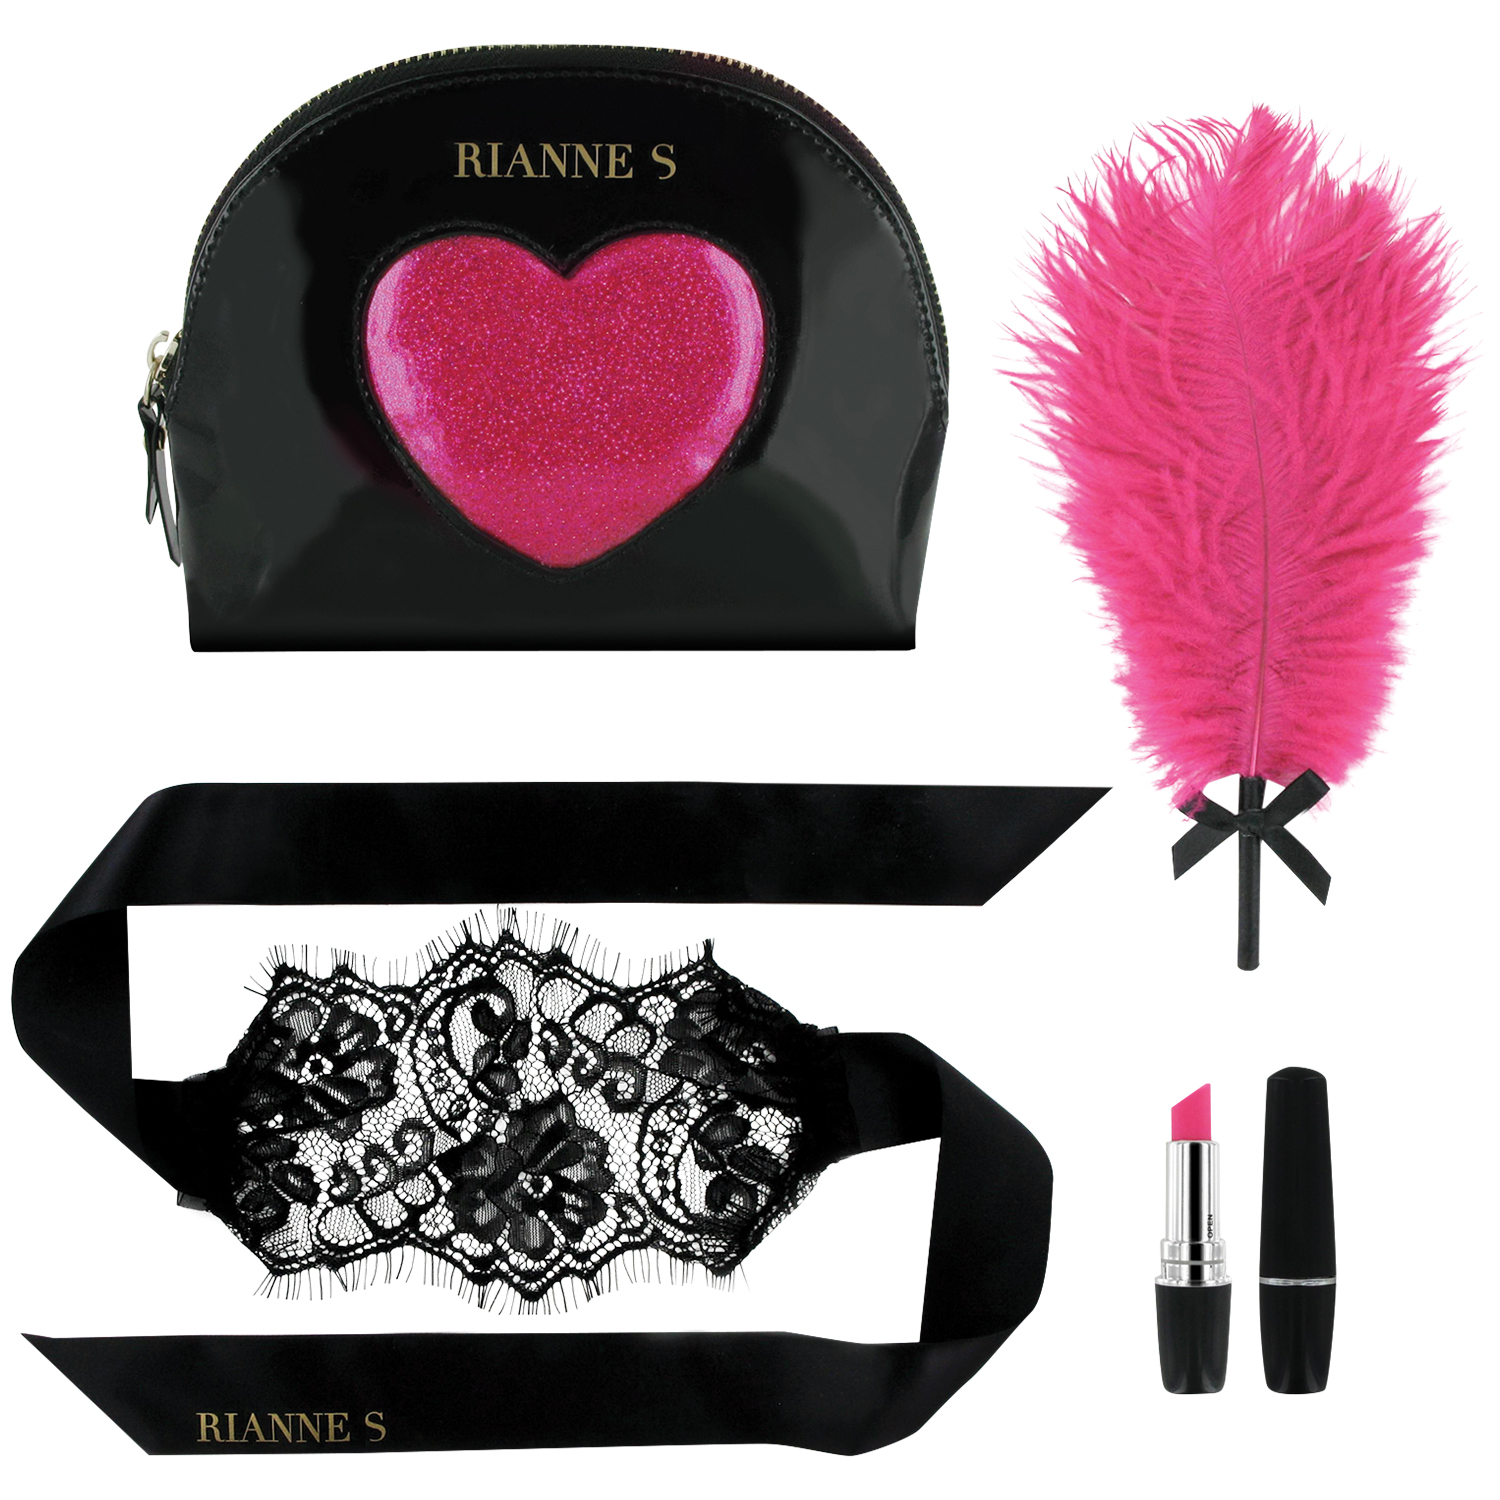 Rianne S Essentials Kit D´Amour Pirrings Sæt